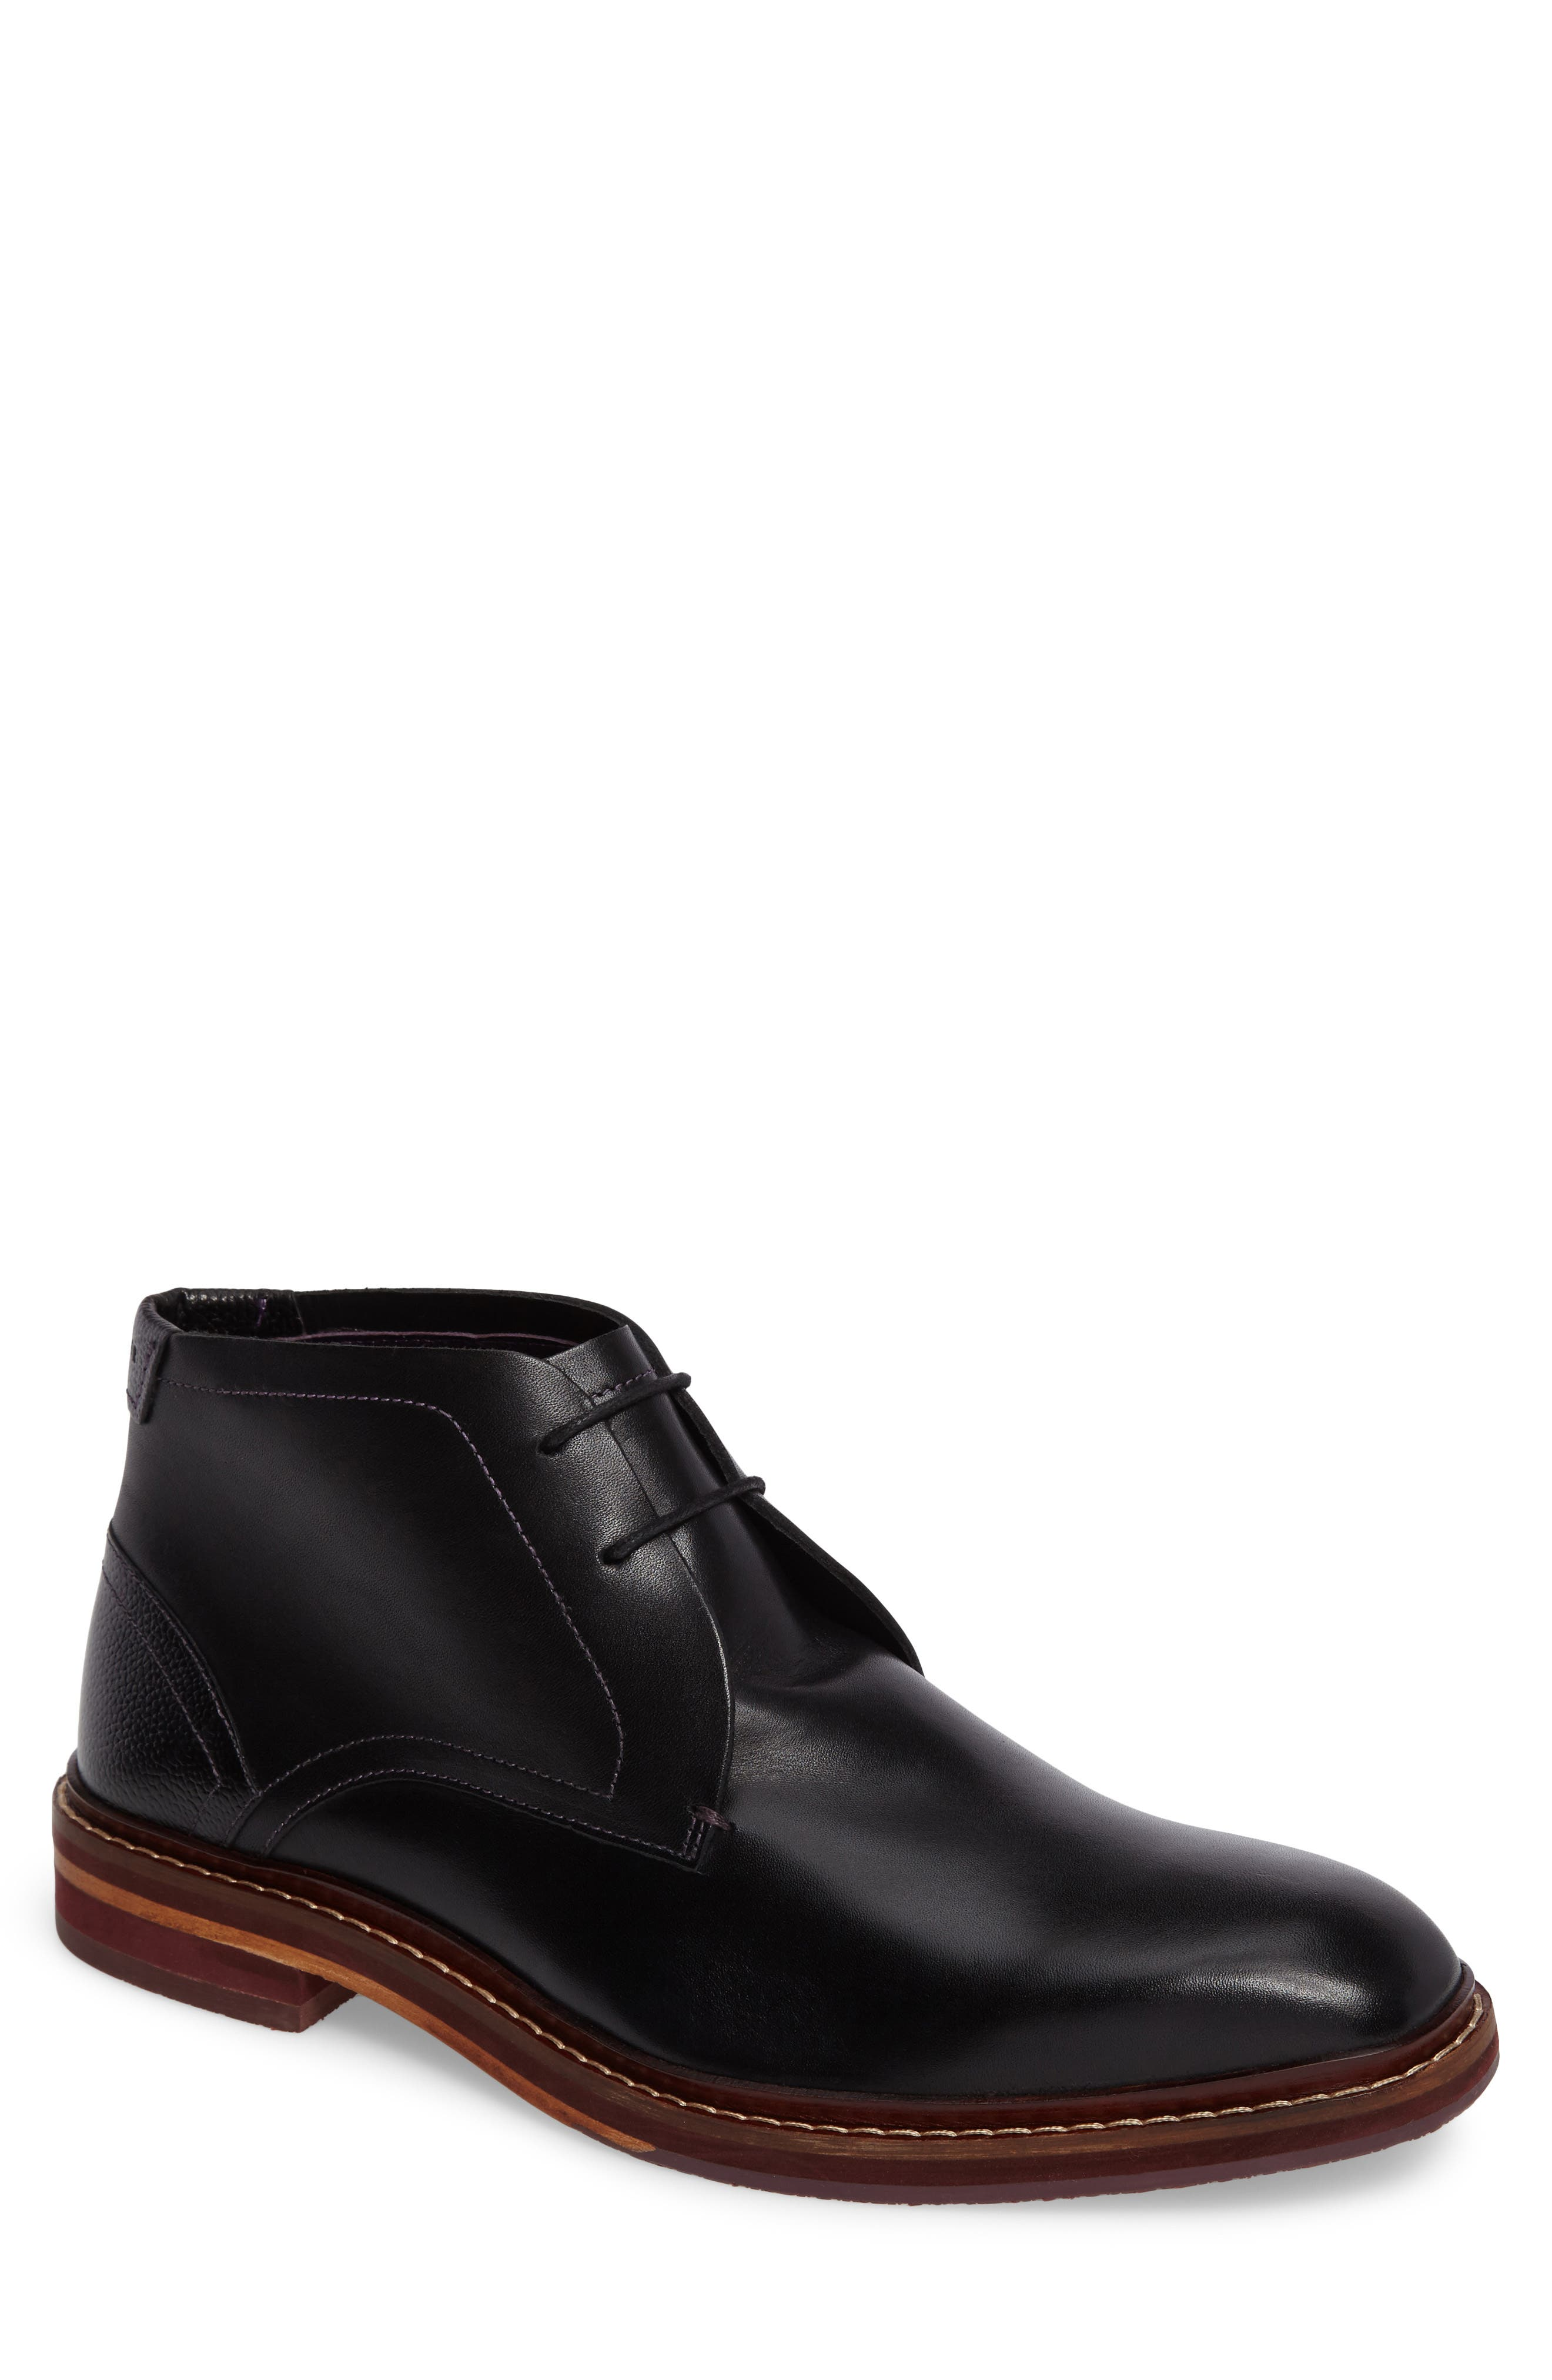 Azzlan Chukka Boot,                         Main,                         color, Black Leather